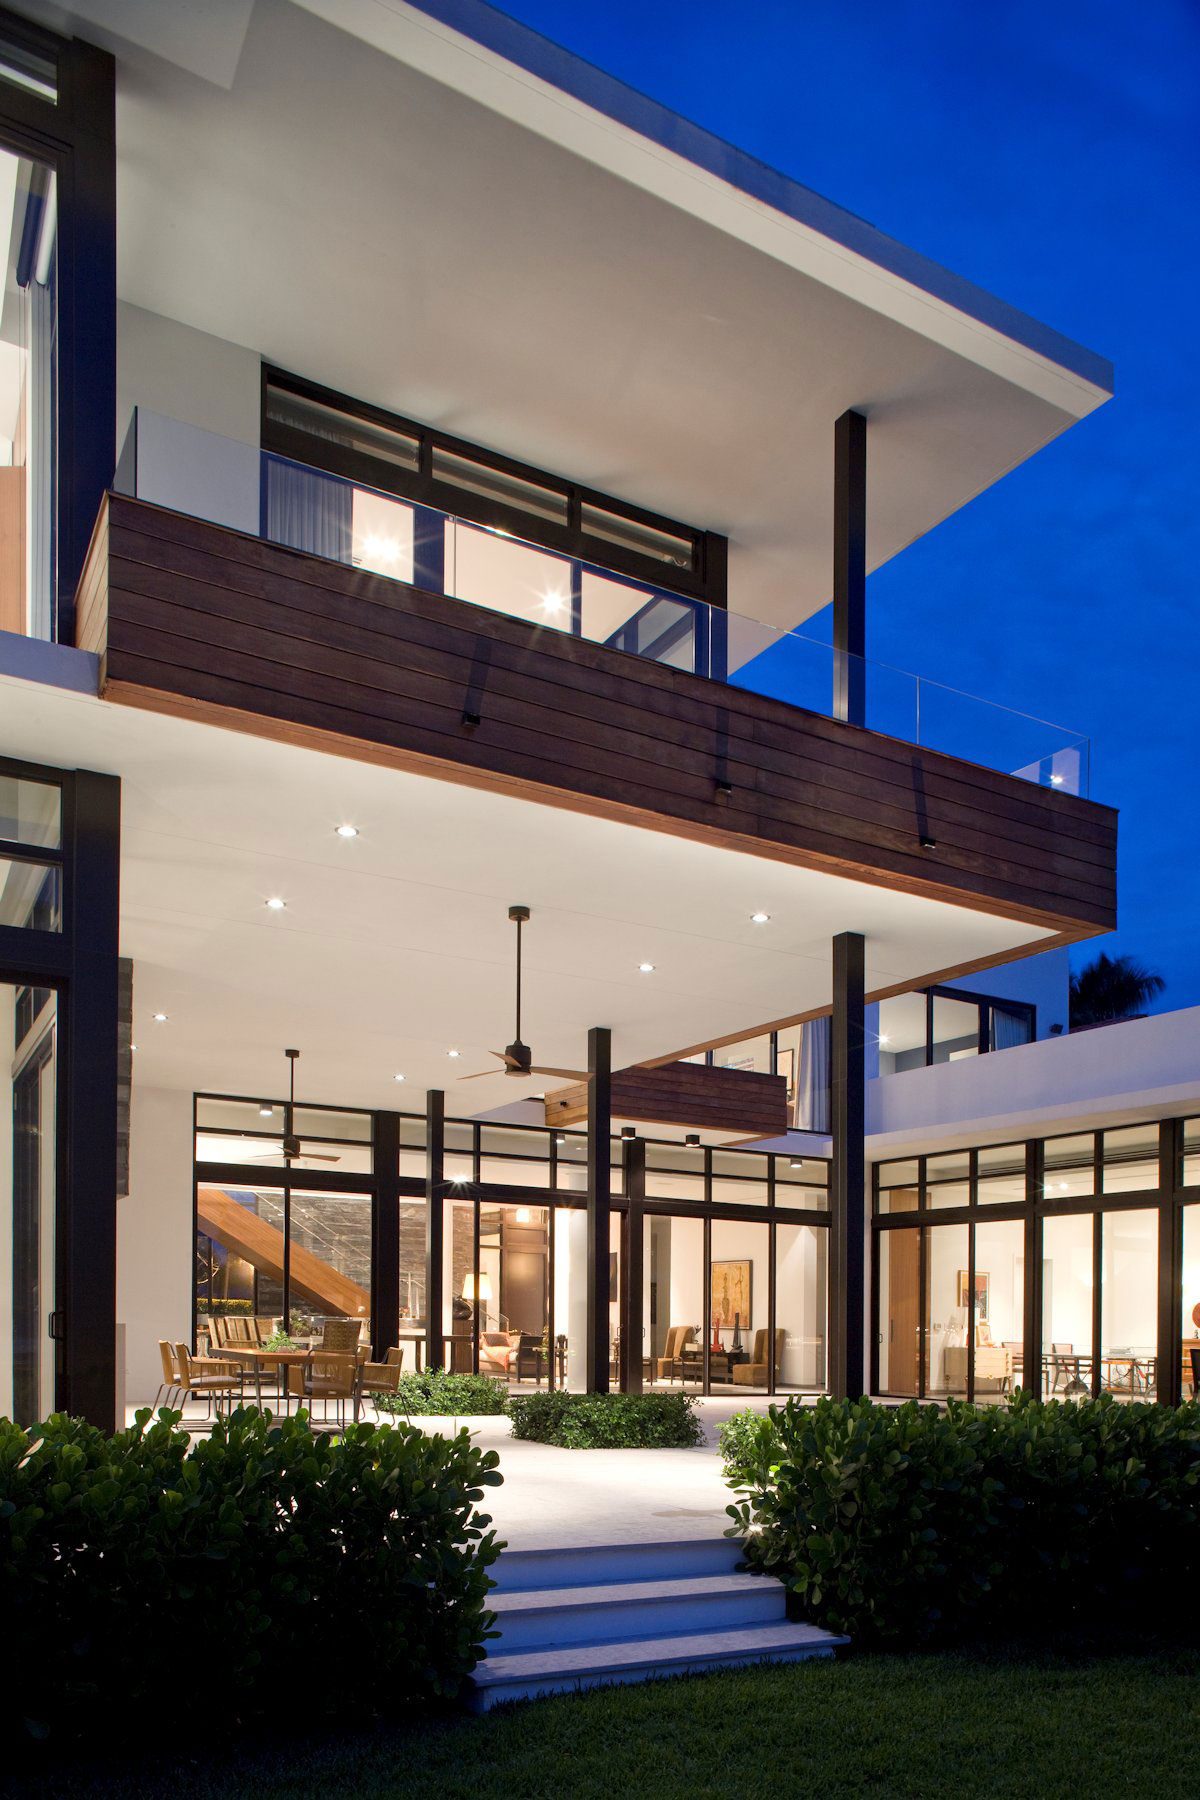 Terrace, Evening, Lighting, Modern Home in Golden Beach, Florida